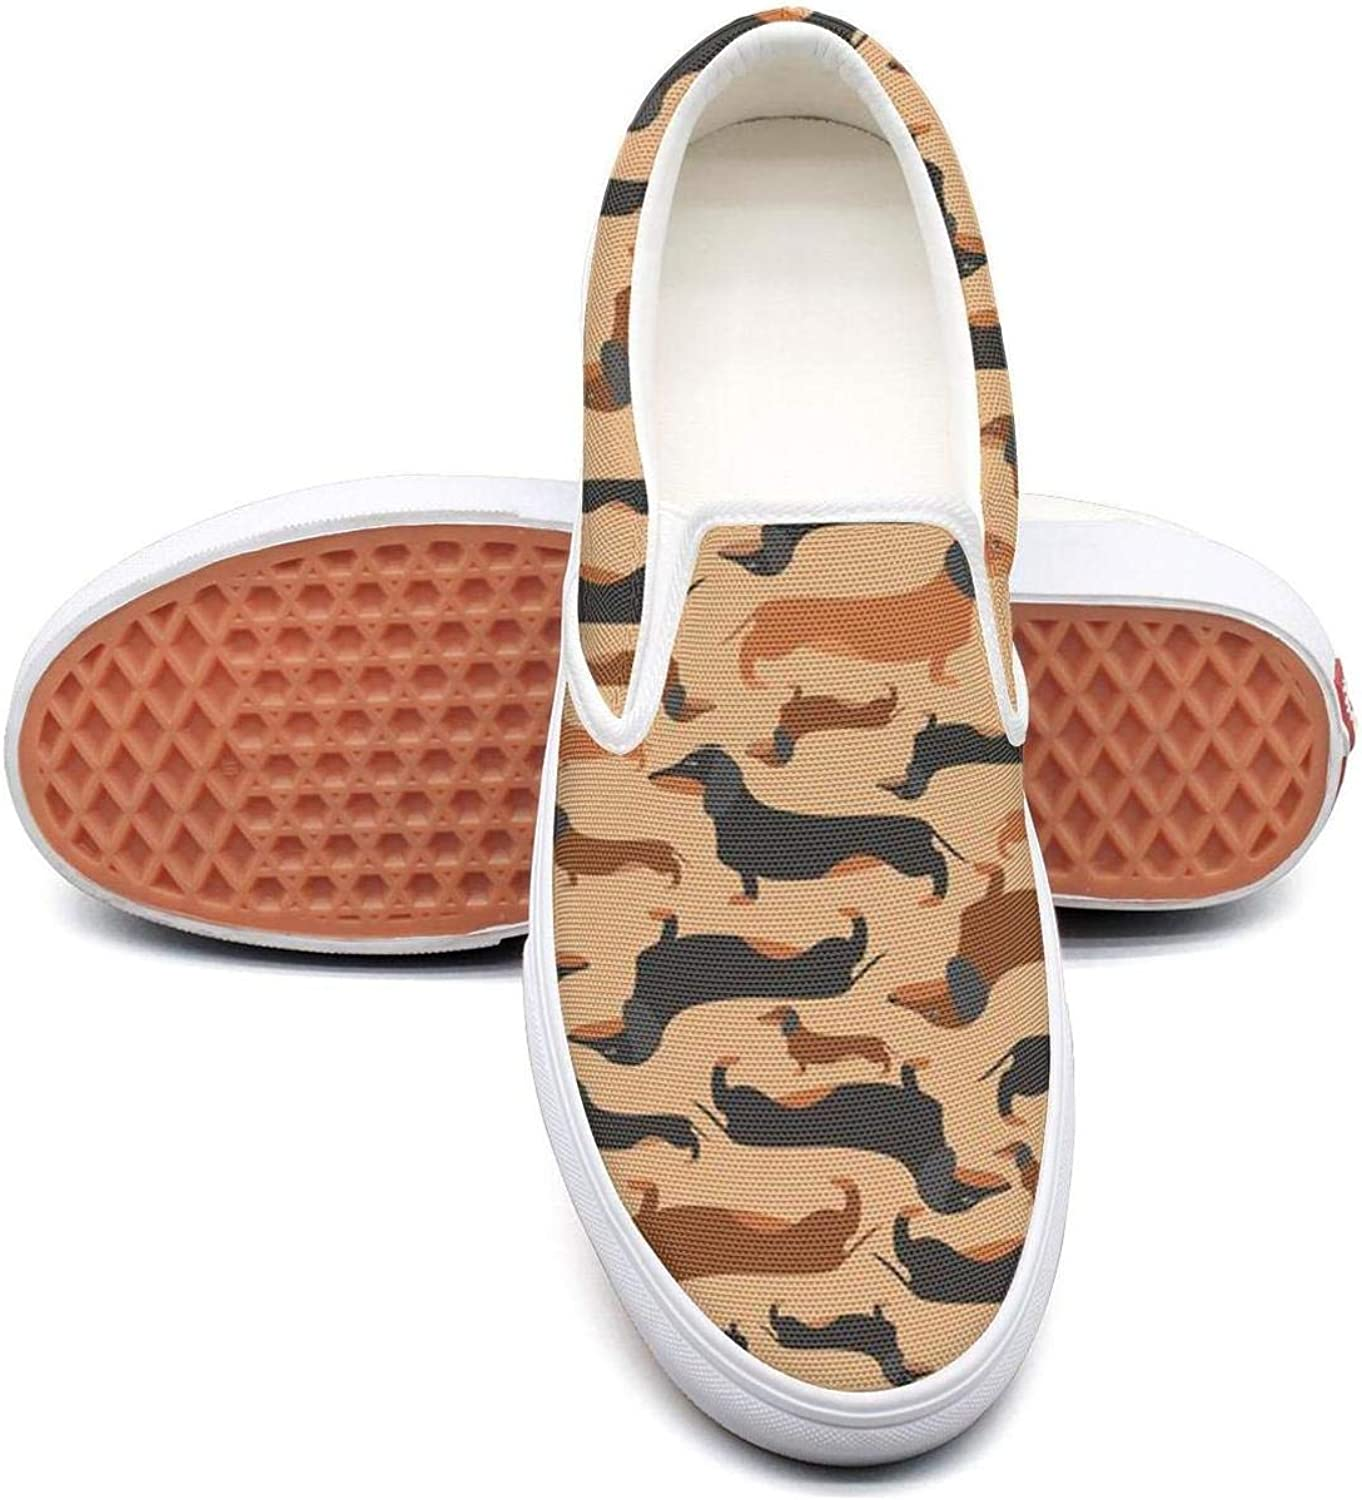 Refyds-es Retro Style Dachshunds Womens Fashion Slip on Low Top Lightweight Canvas Athletic Sneakers